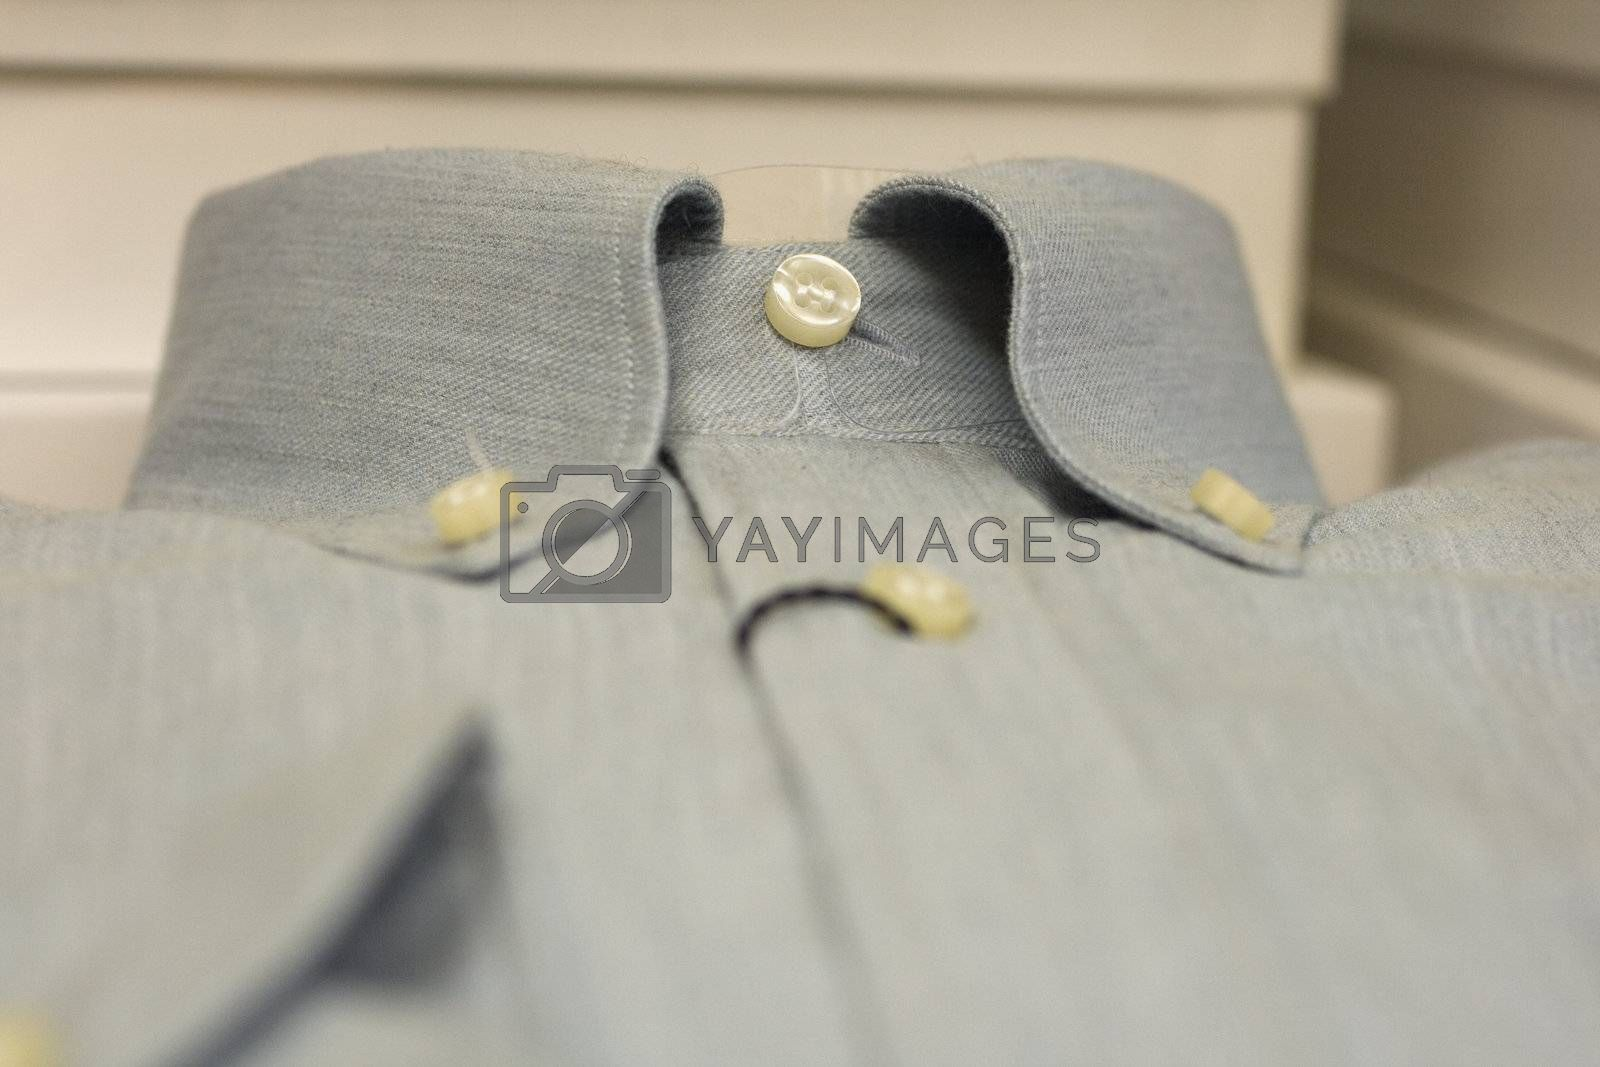 dress shirt in jeans